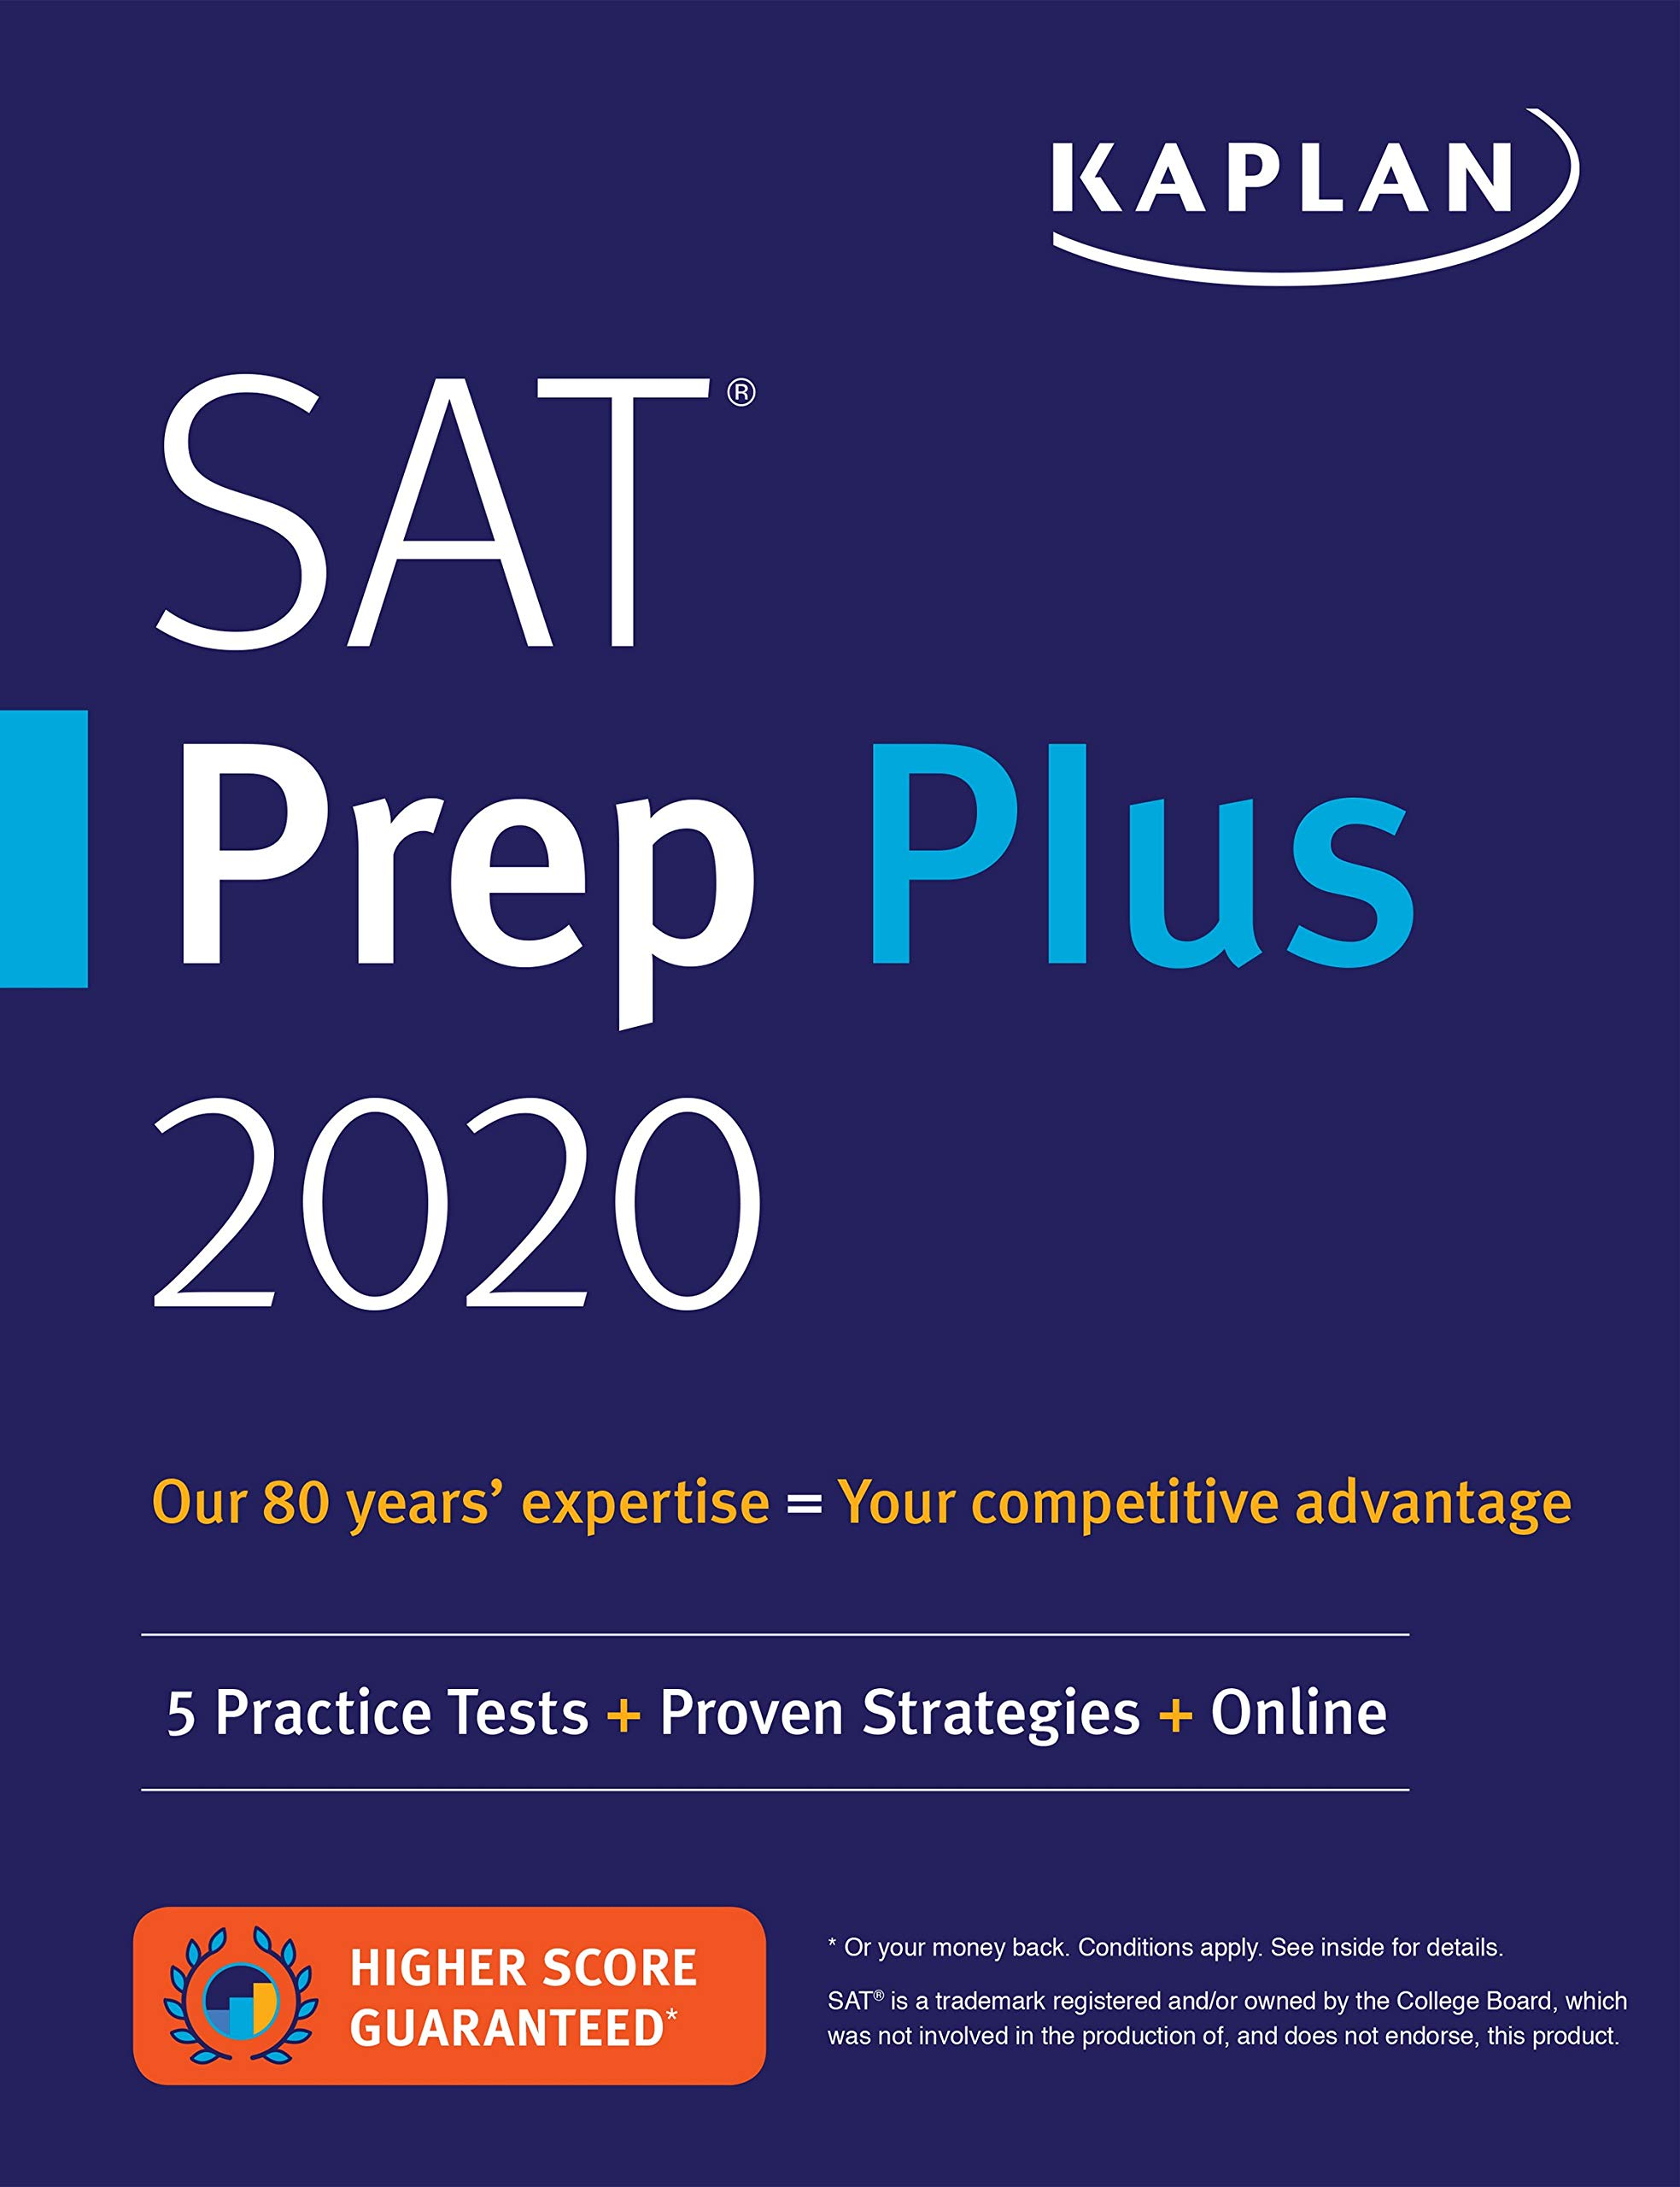 SAT Prep Plus 2020: 5 Practice Tests + Proven Strategies + Online (Kaplan Test Prep) by Kaplan Publishing